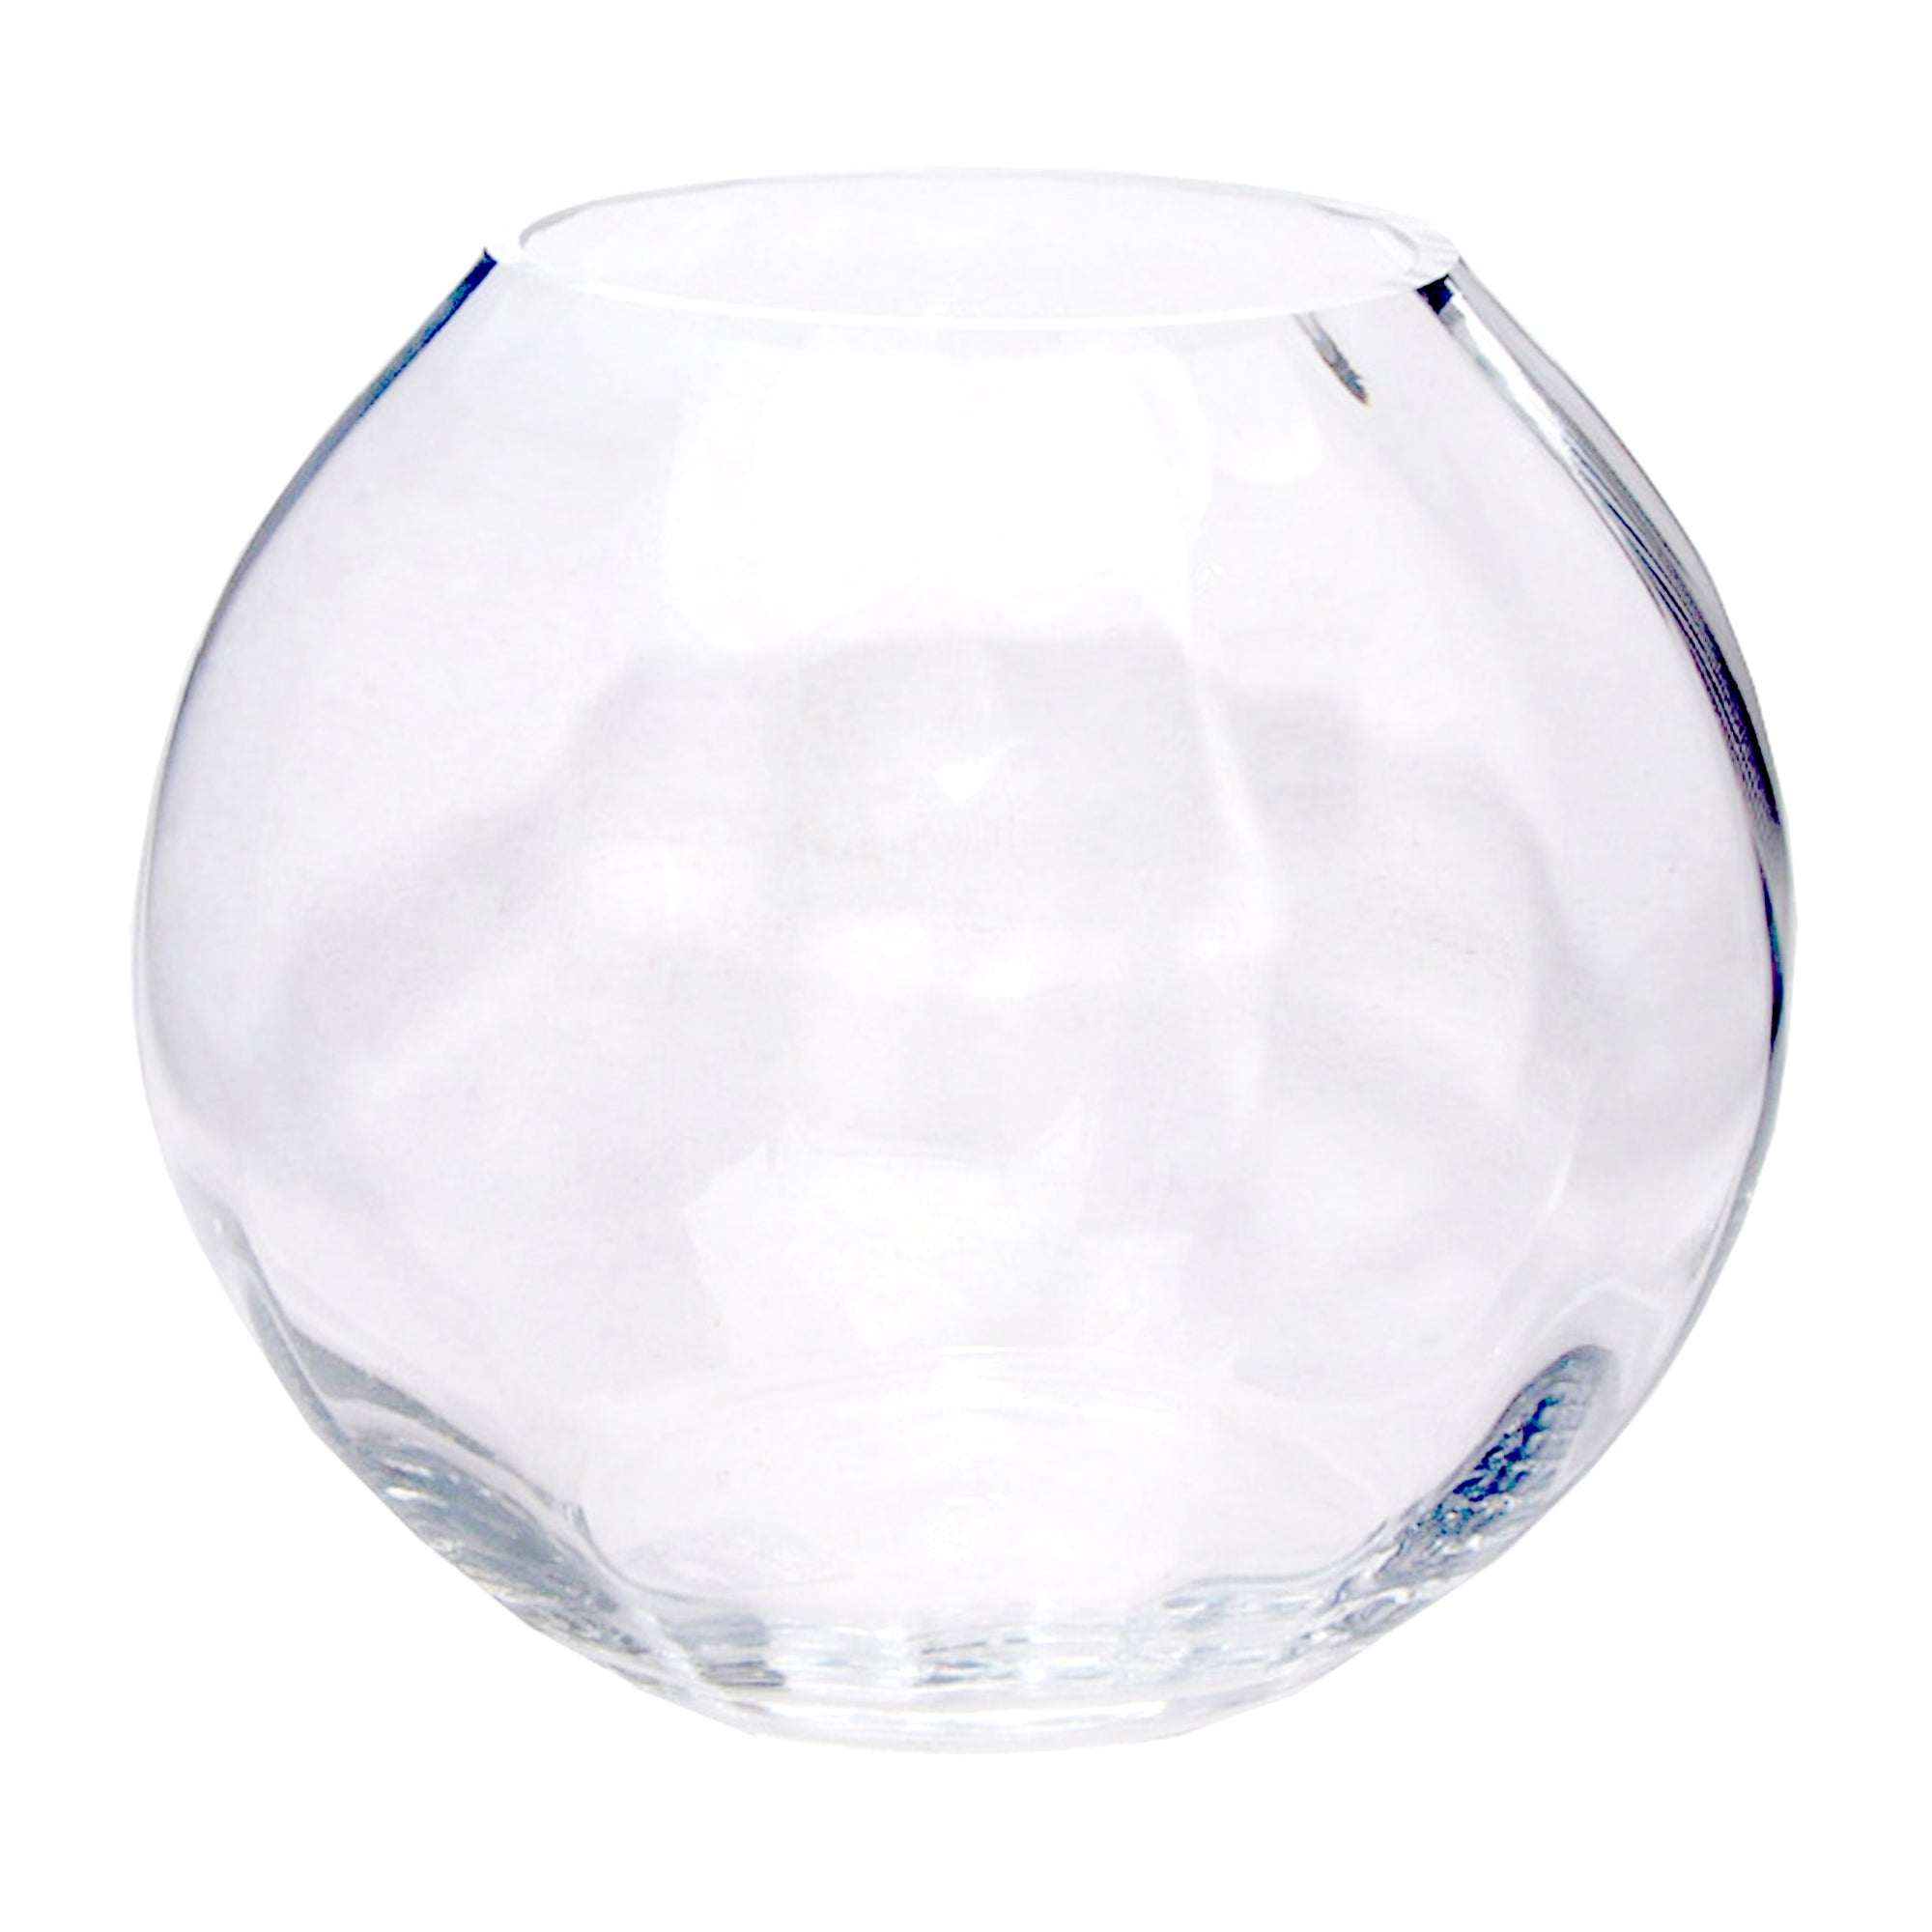 Optic Fishbowl Vase